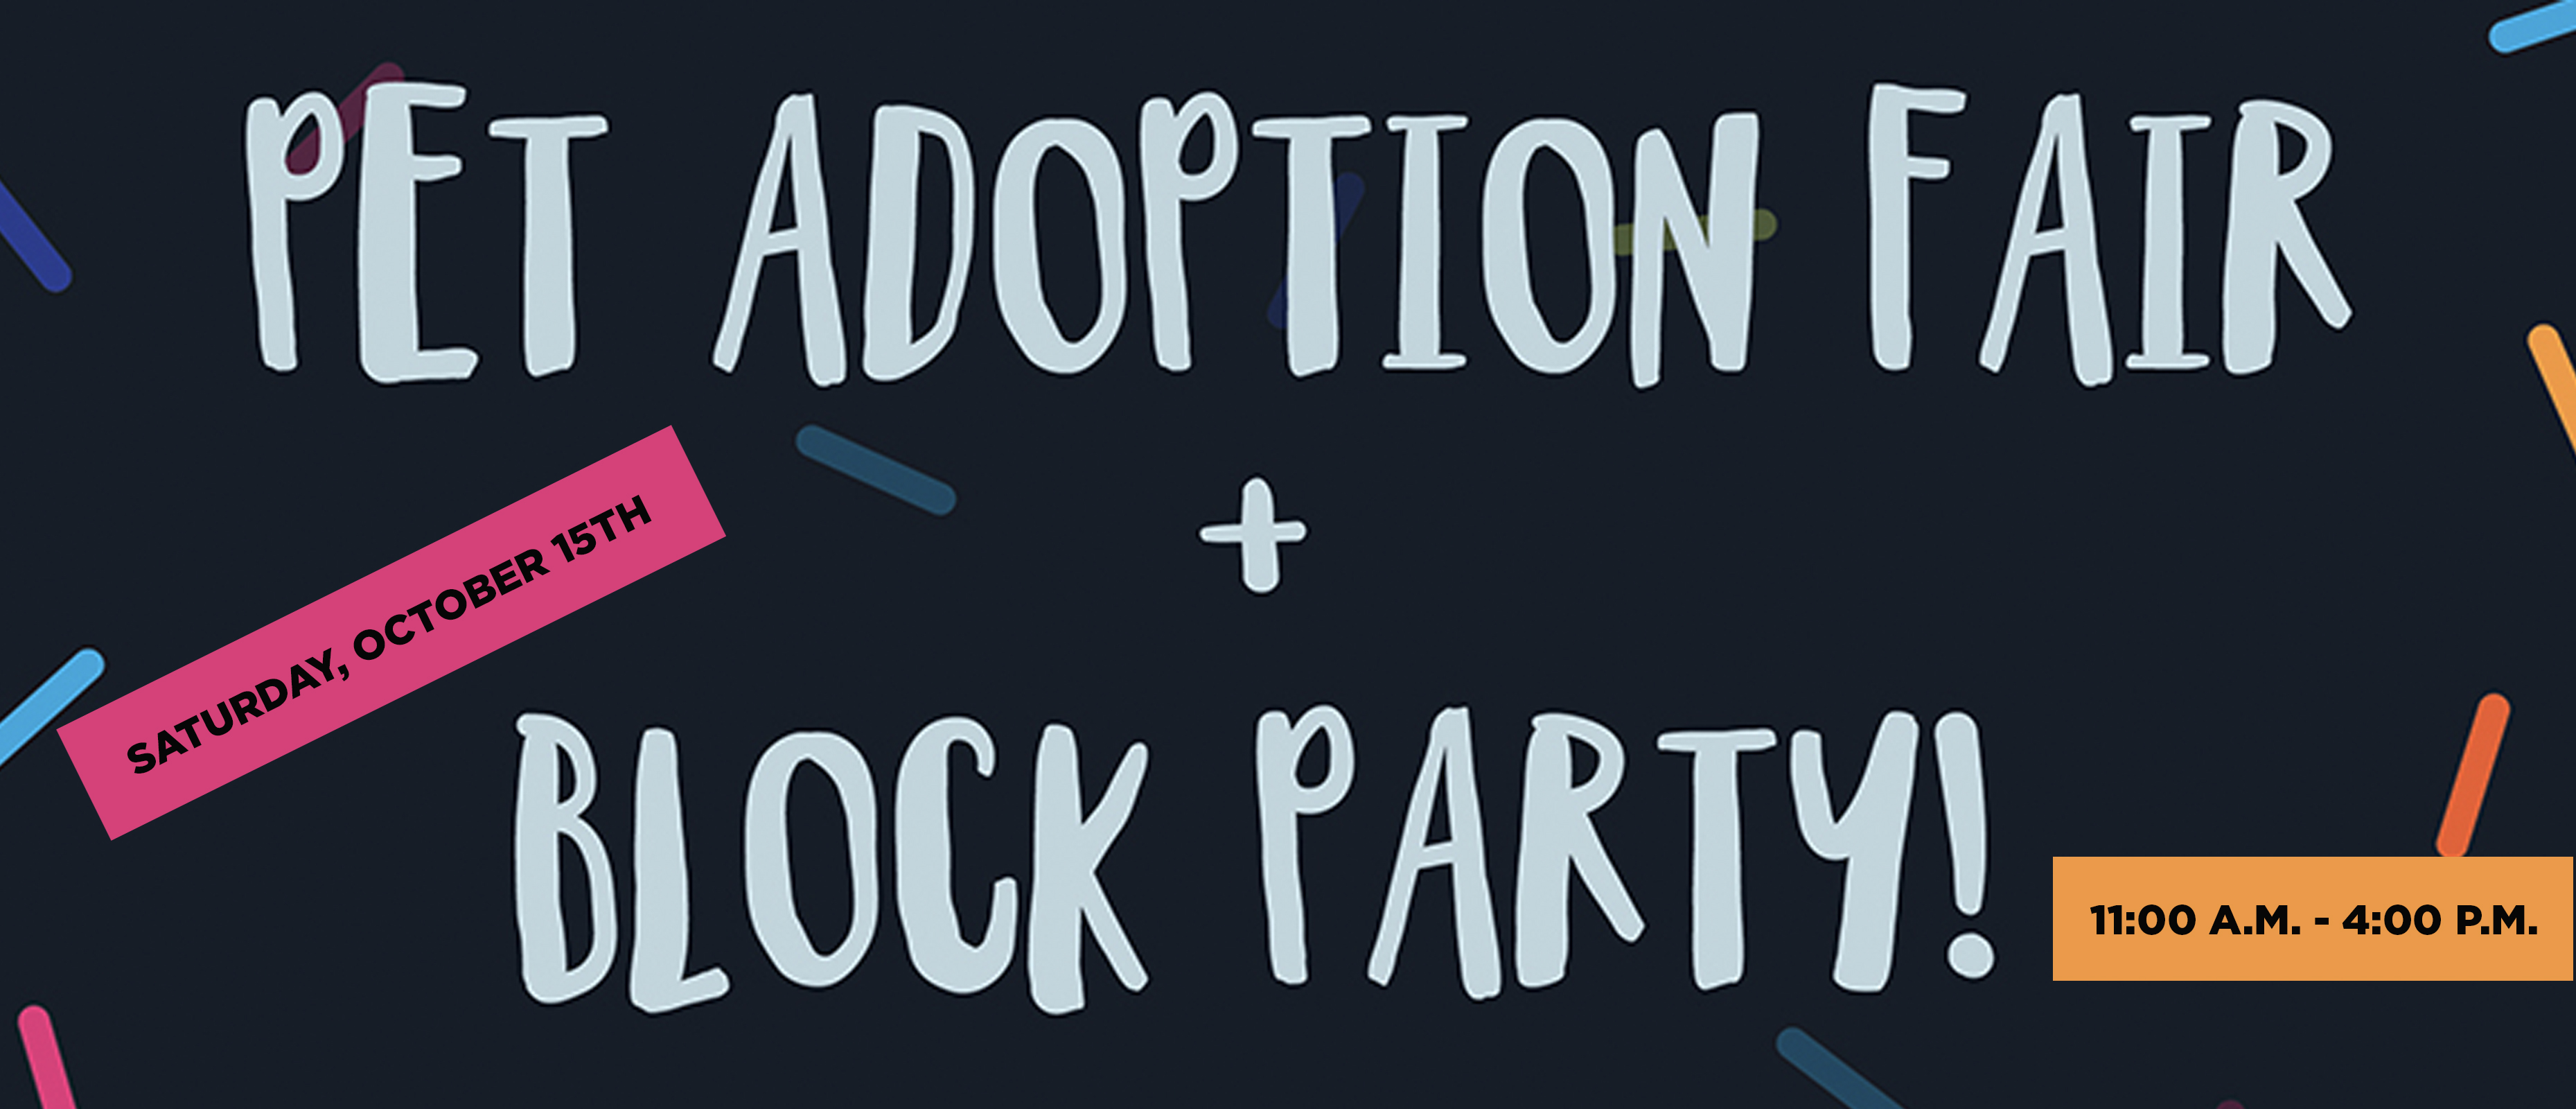 Adoption Fair and Block Party on October 15th, from 11:00 a.m. to 4:00 p.m.